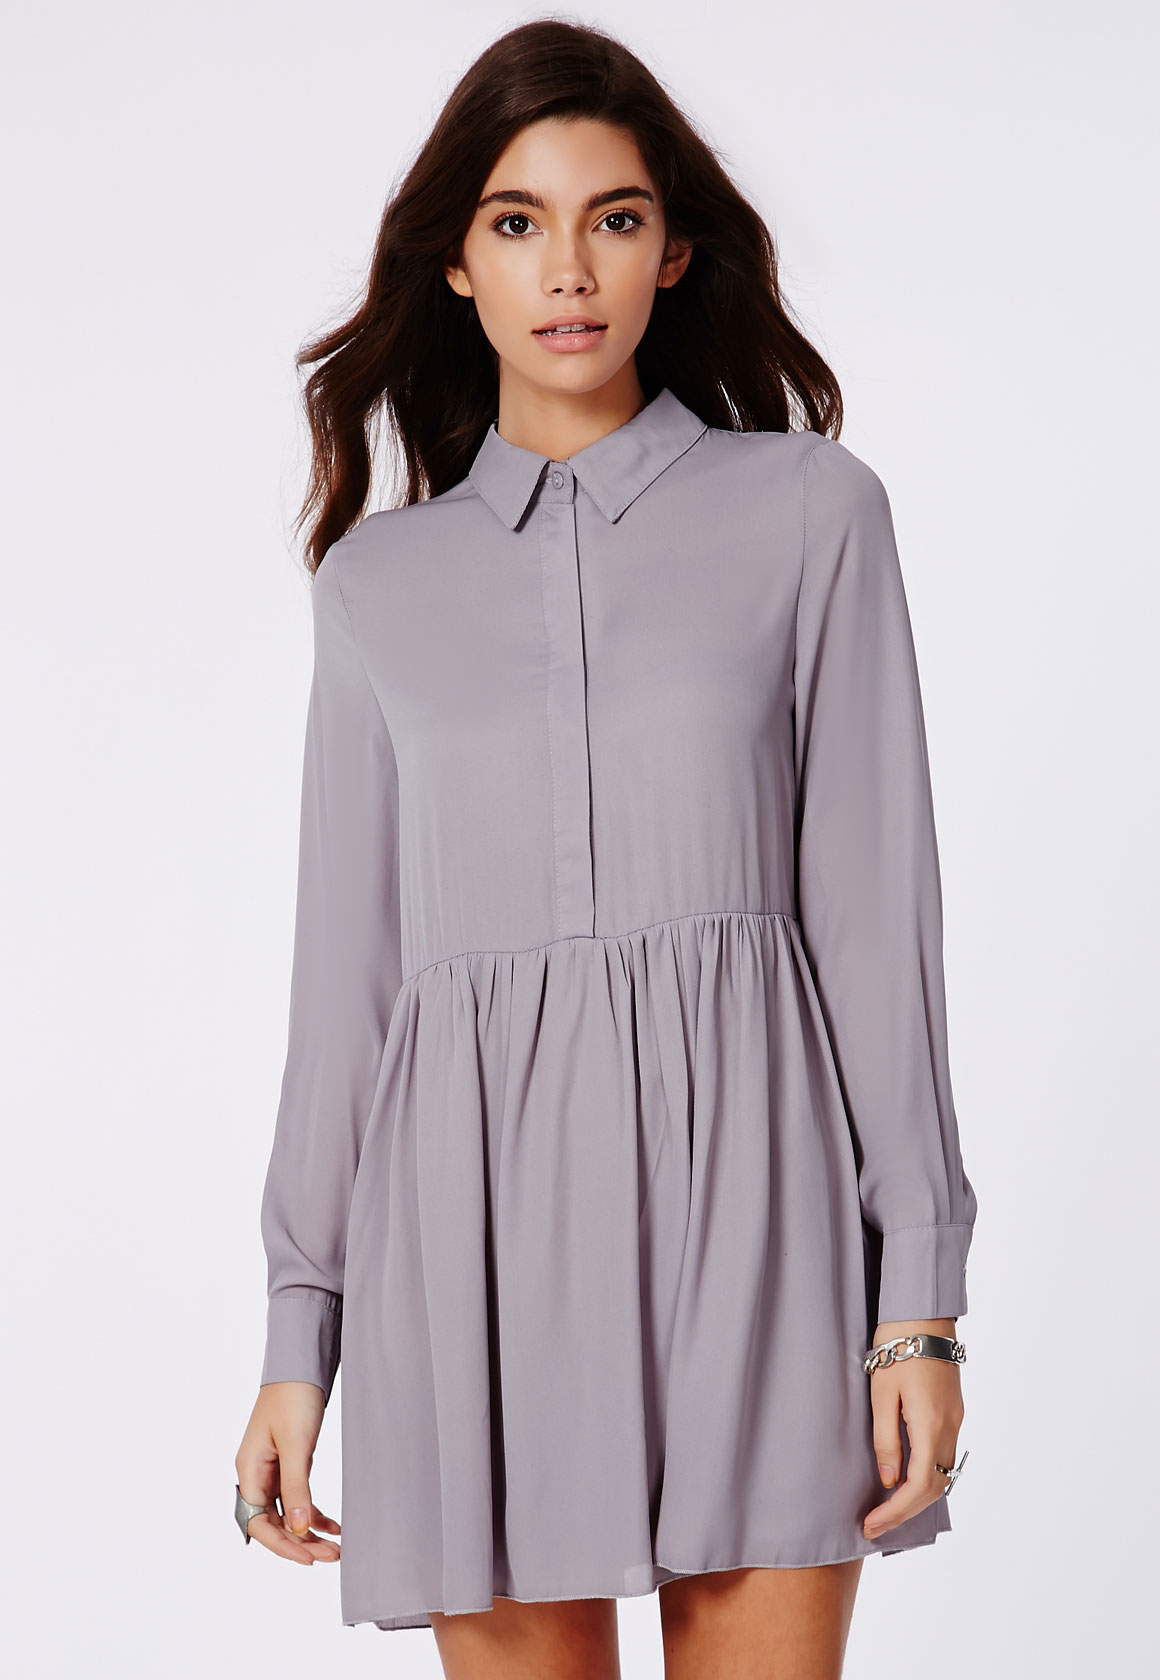 Shop Missguided online and buy Grey  Shirt Dress by Missguided